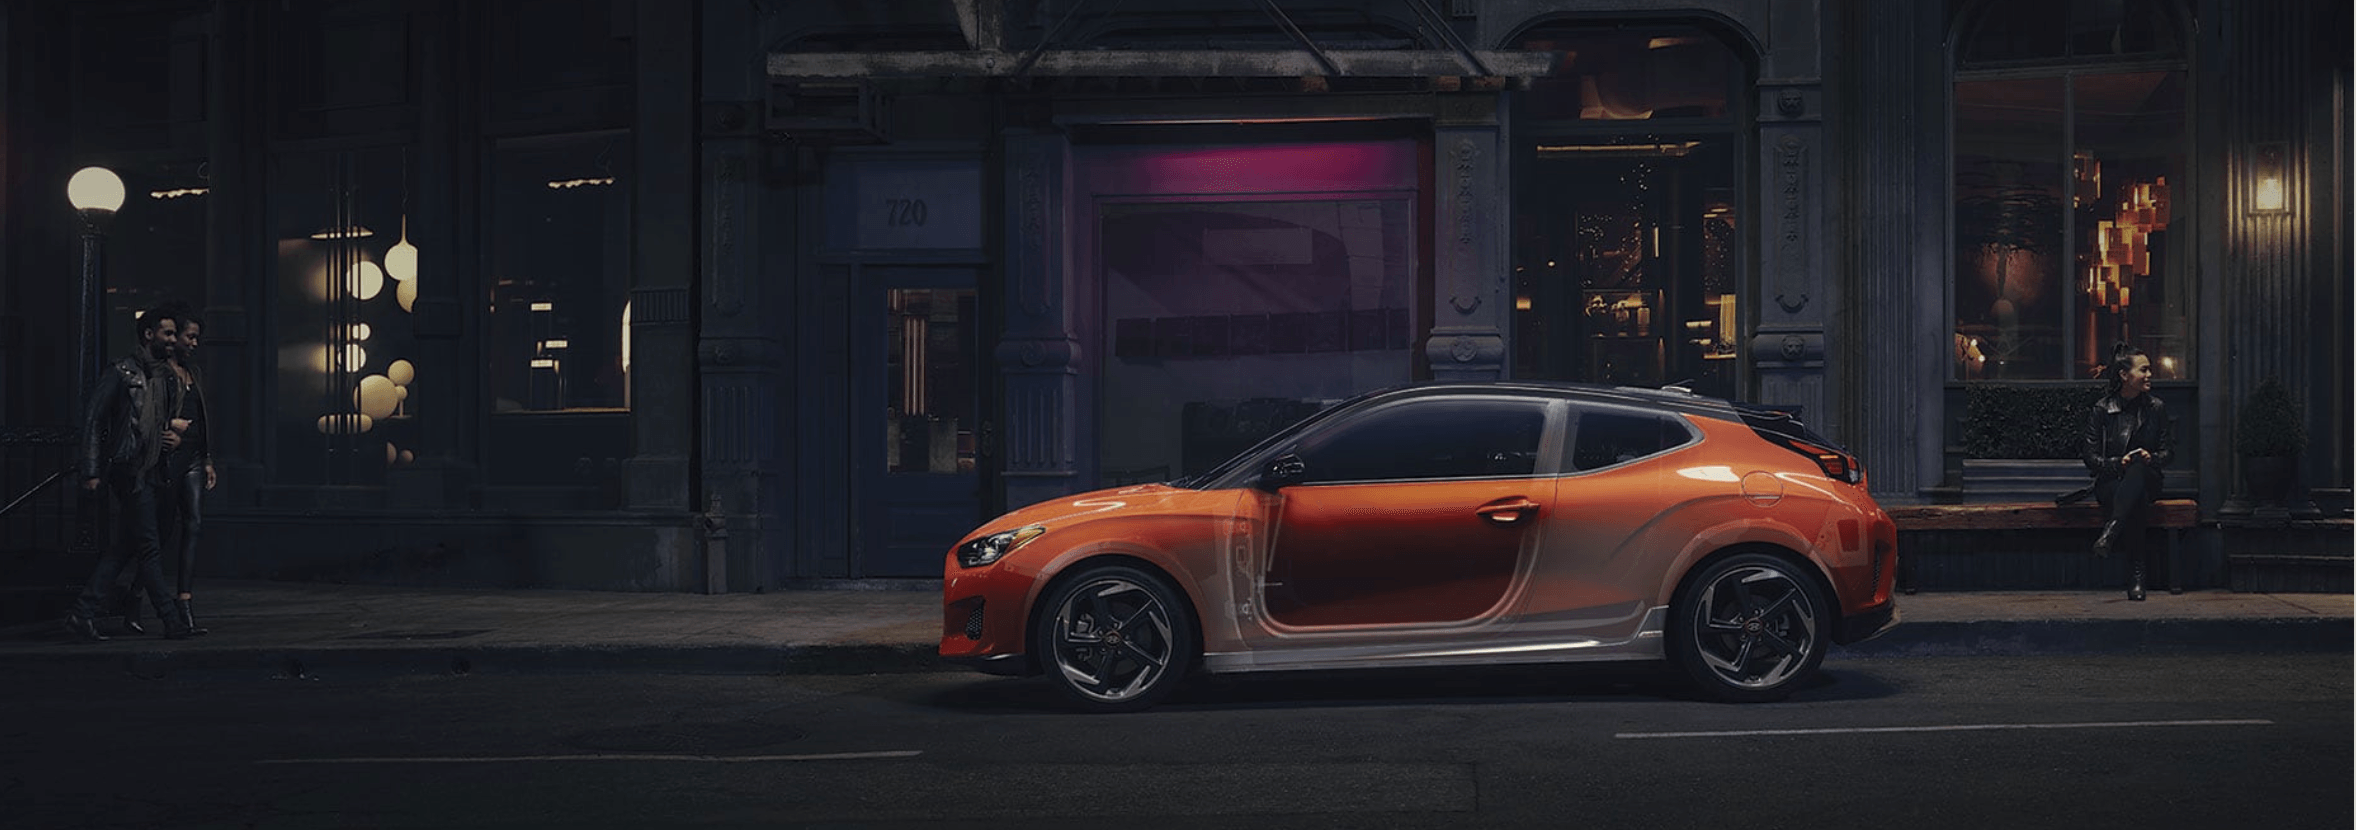 Veloster Superstructure